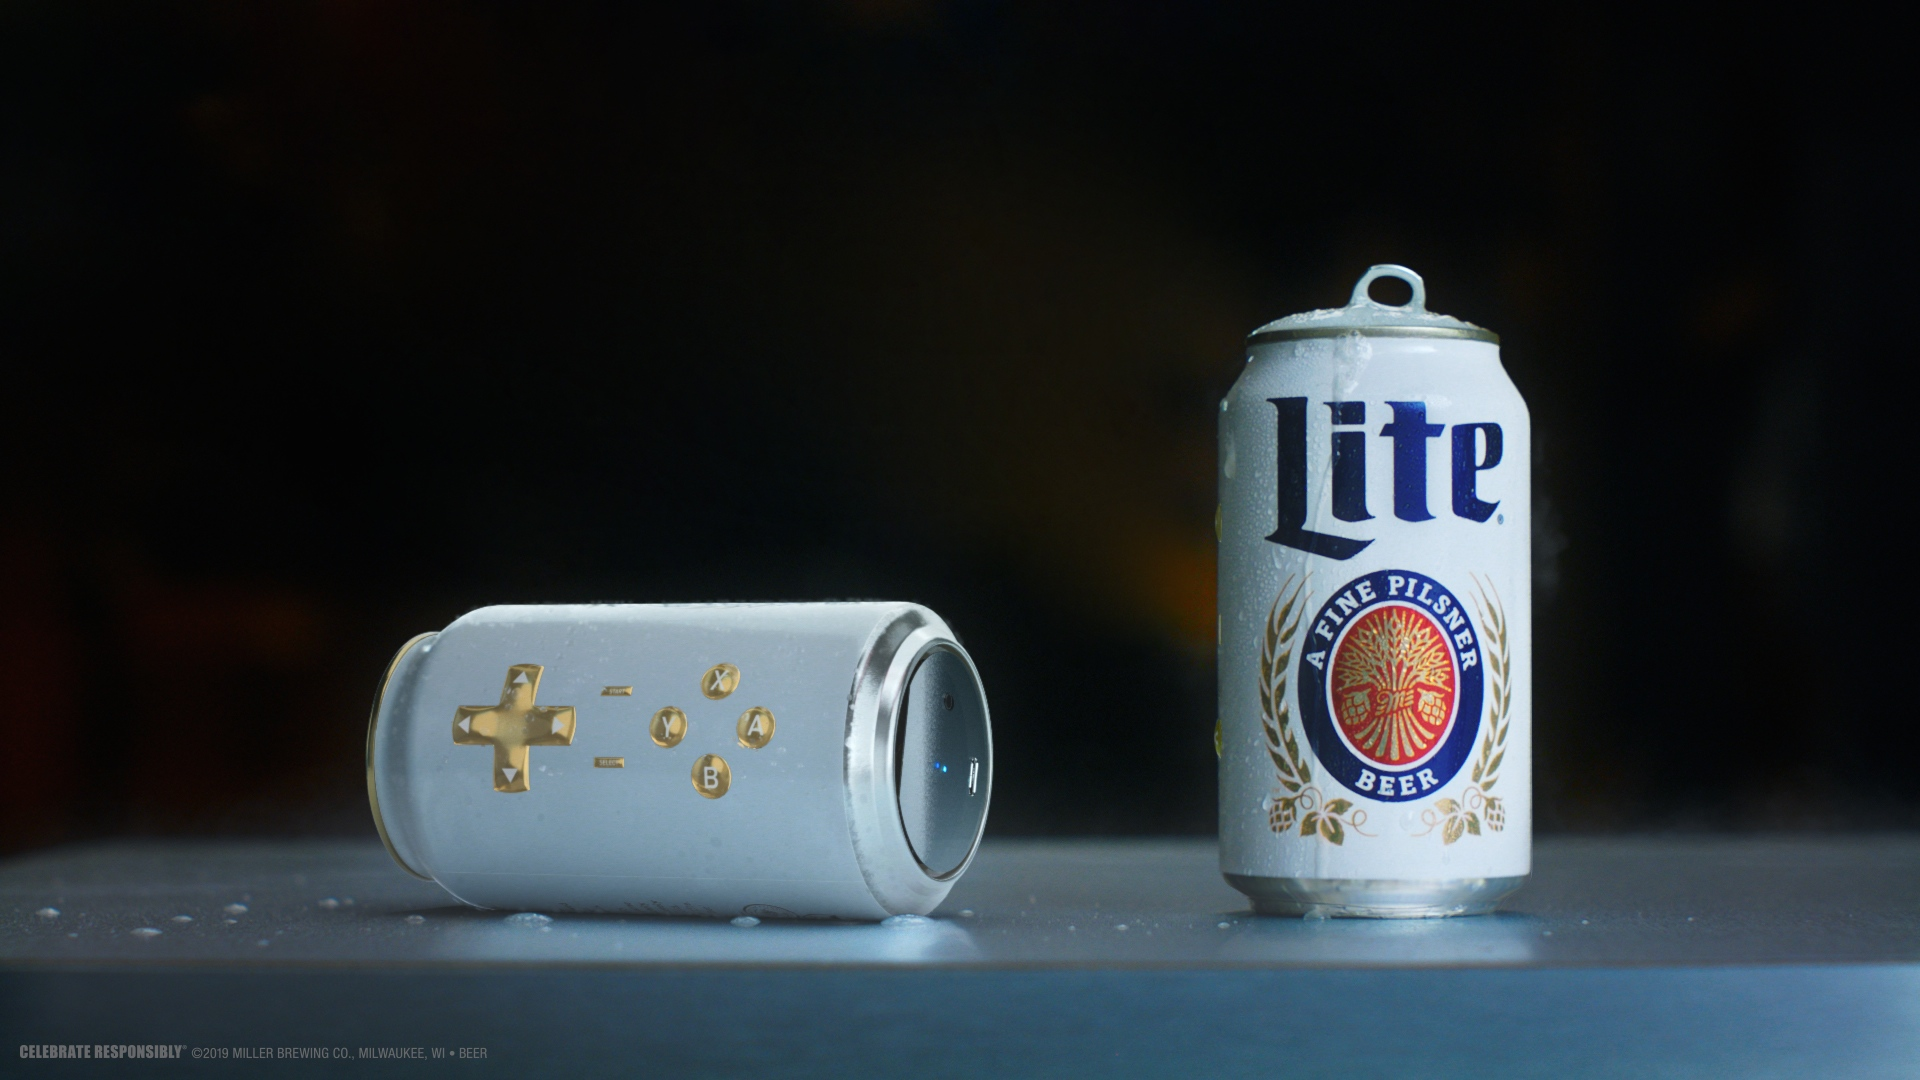 This Beer Can Is a Video Game Controller, and You Can Drink the Beer Inside